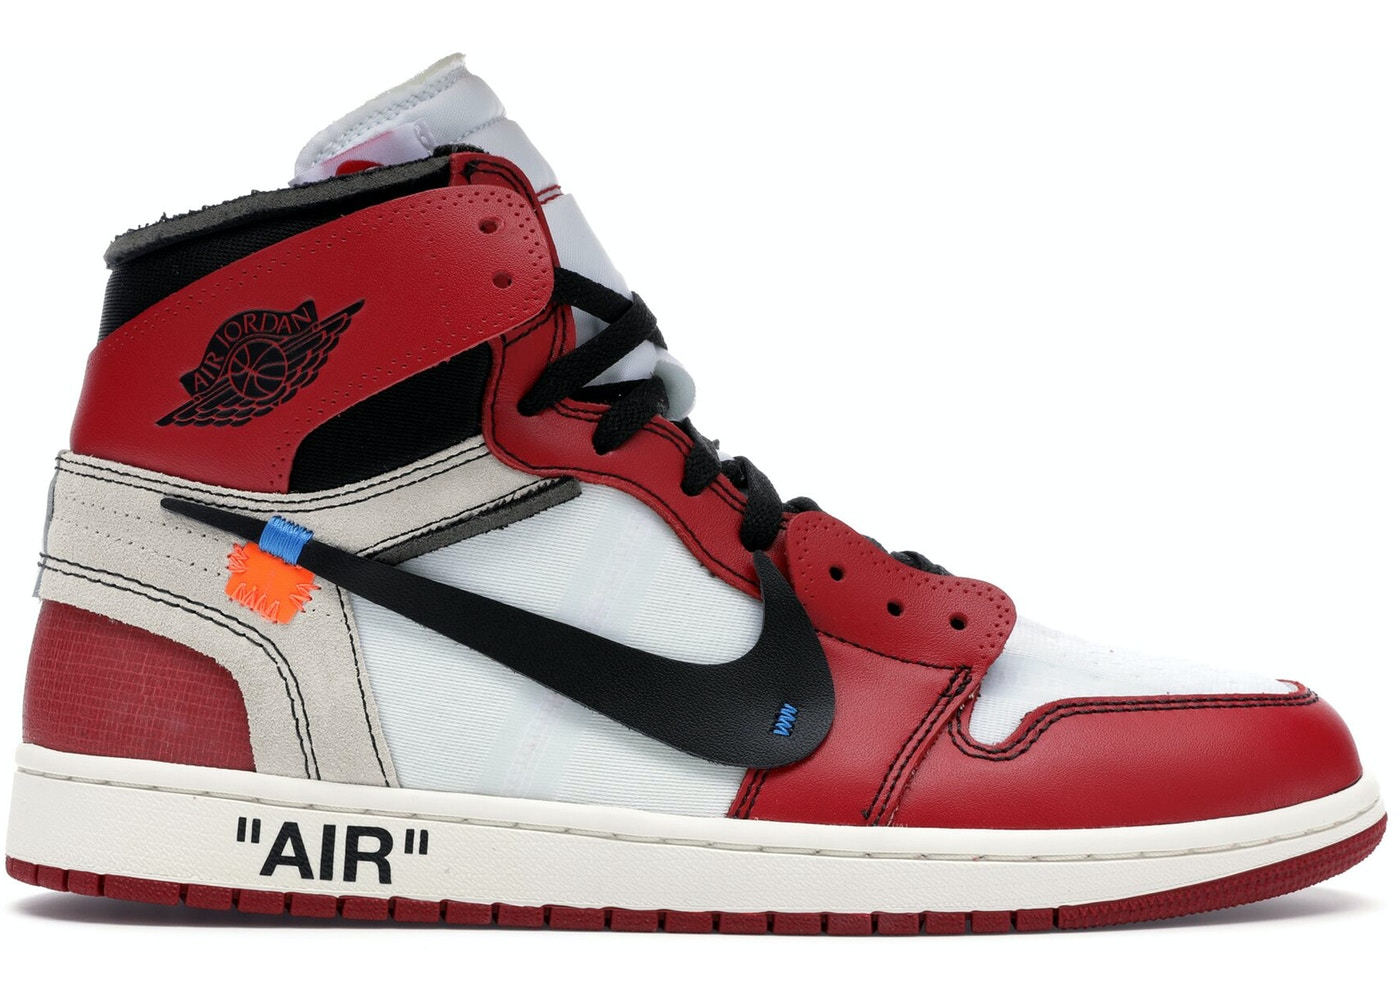 2438355b004 Jordan 1 Retro High Off-White Chicago - AA3834-101